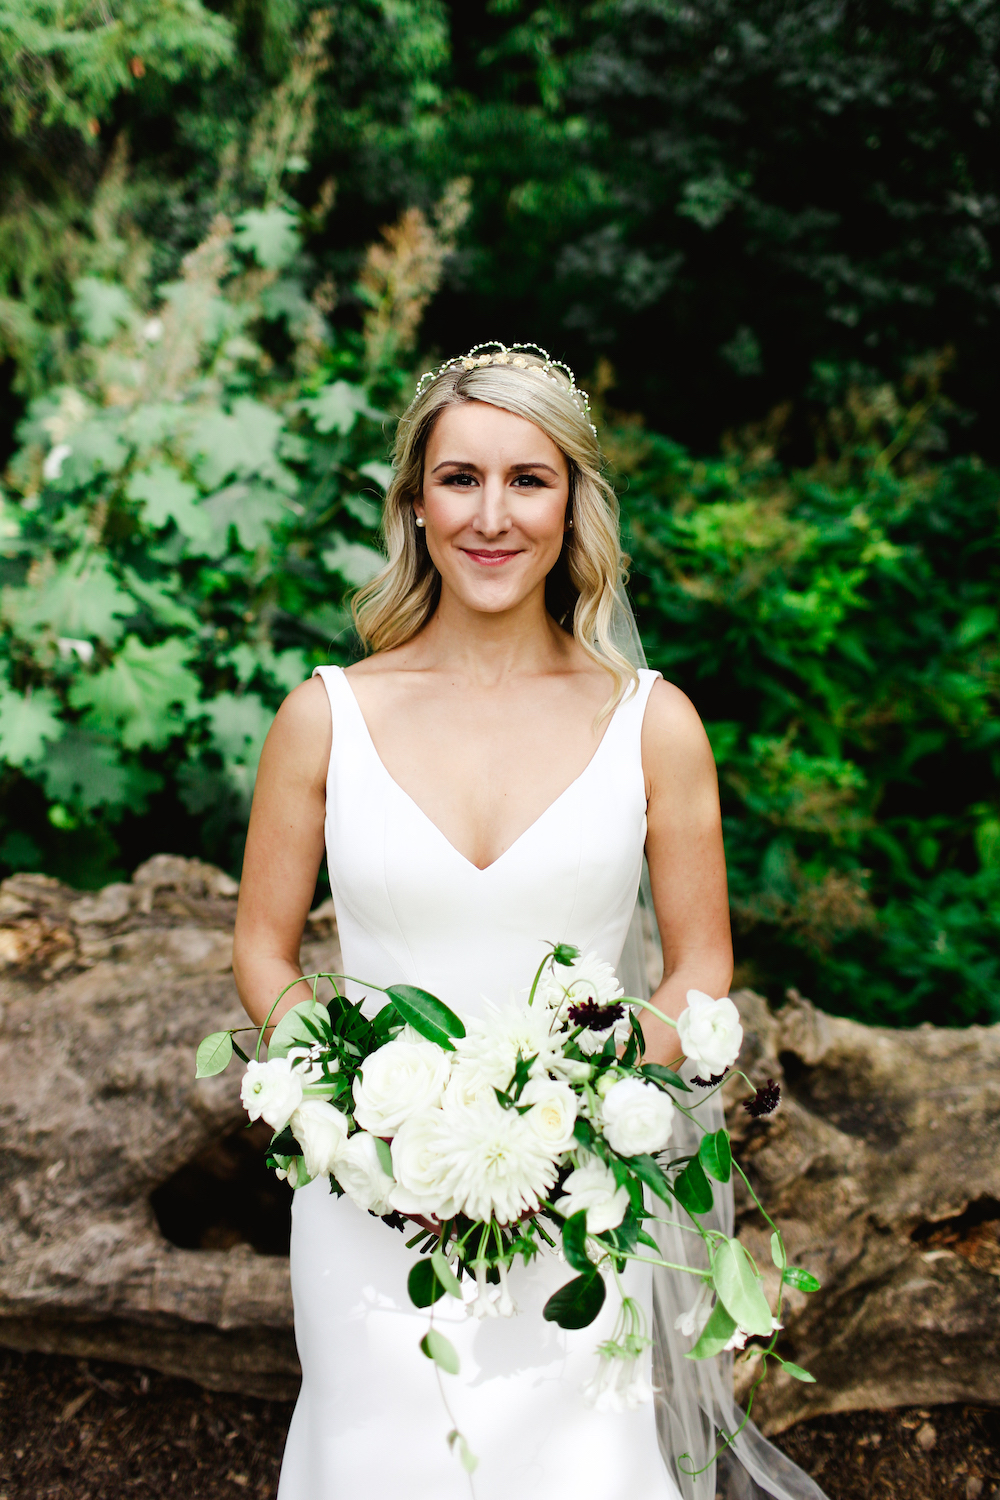 White and Green Bridal Bouquet - Stone House Creative